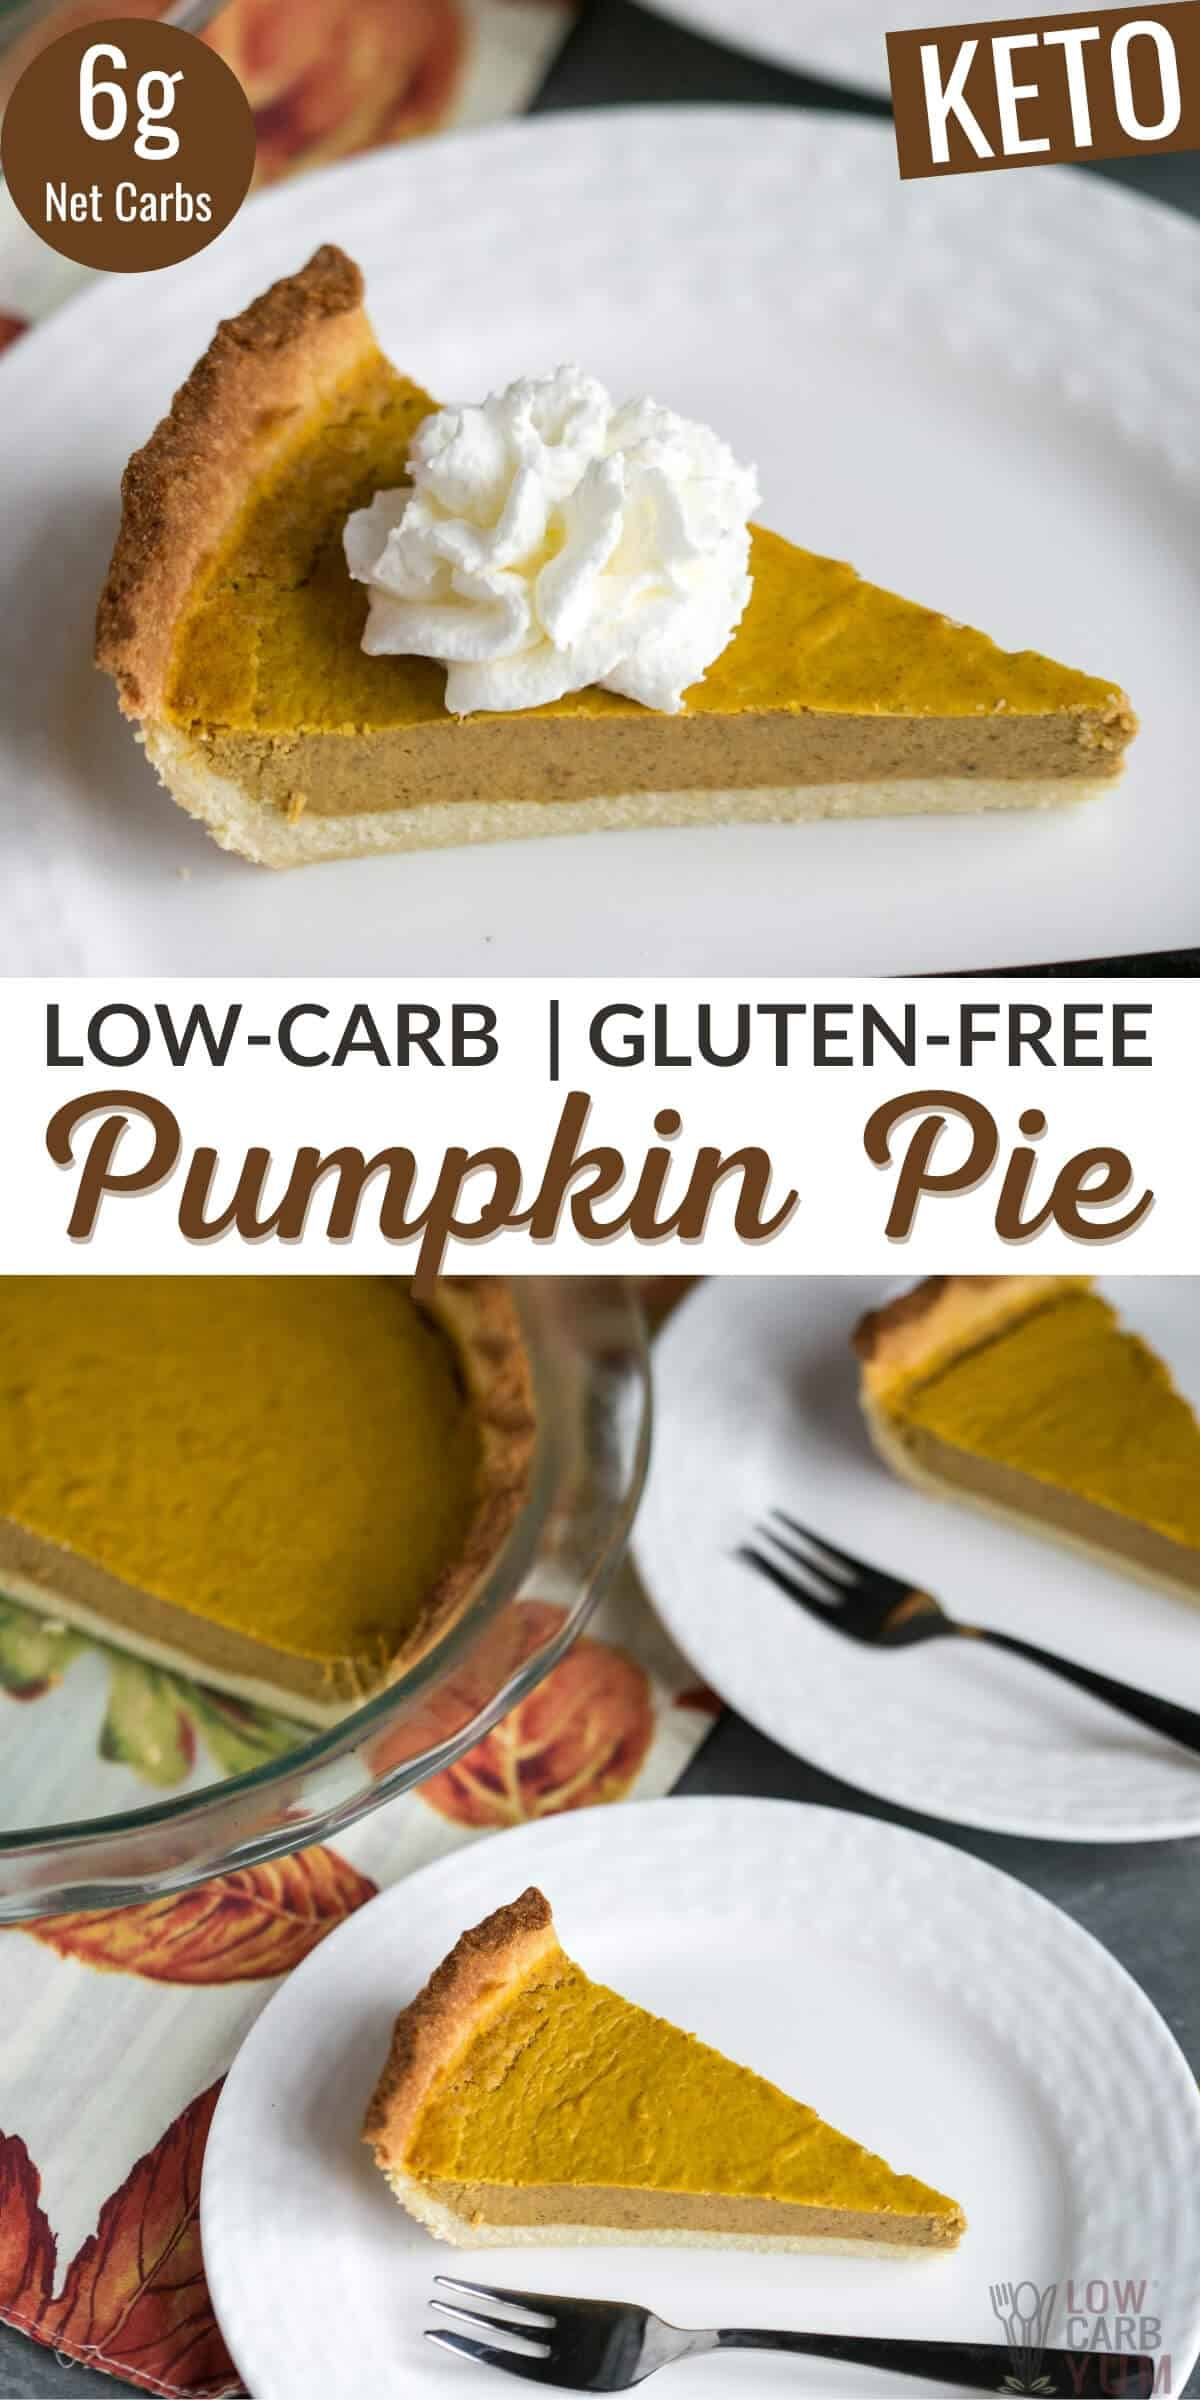 low carb keto pumpkin pie recipe